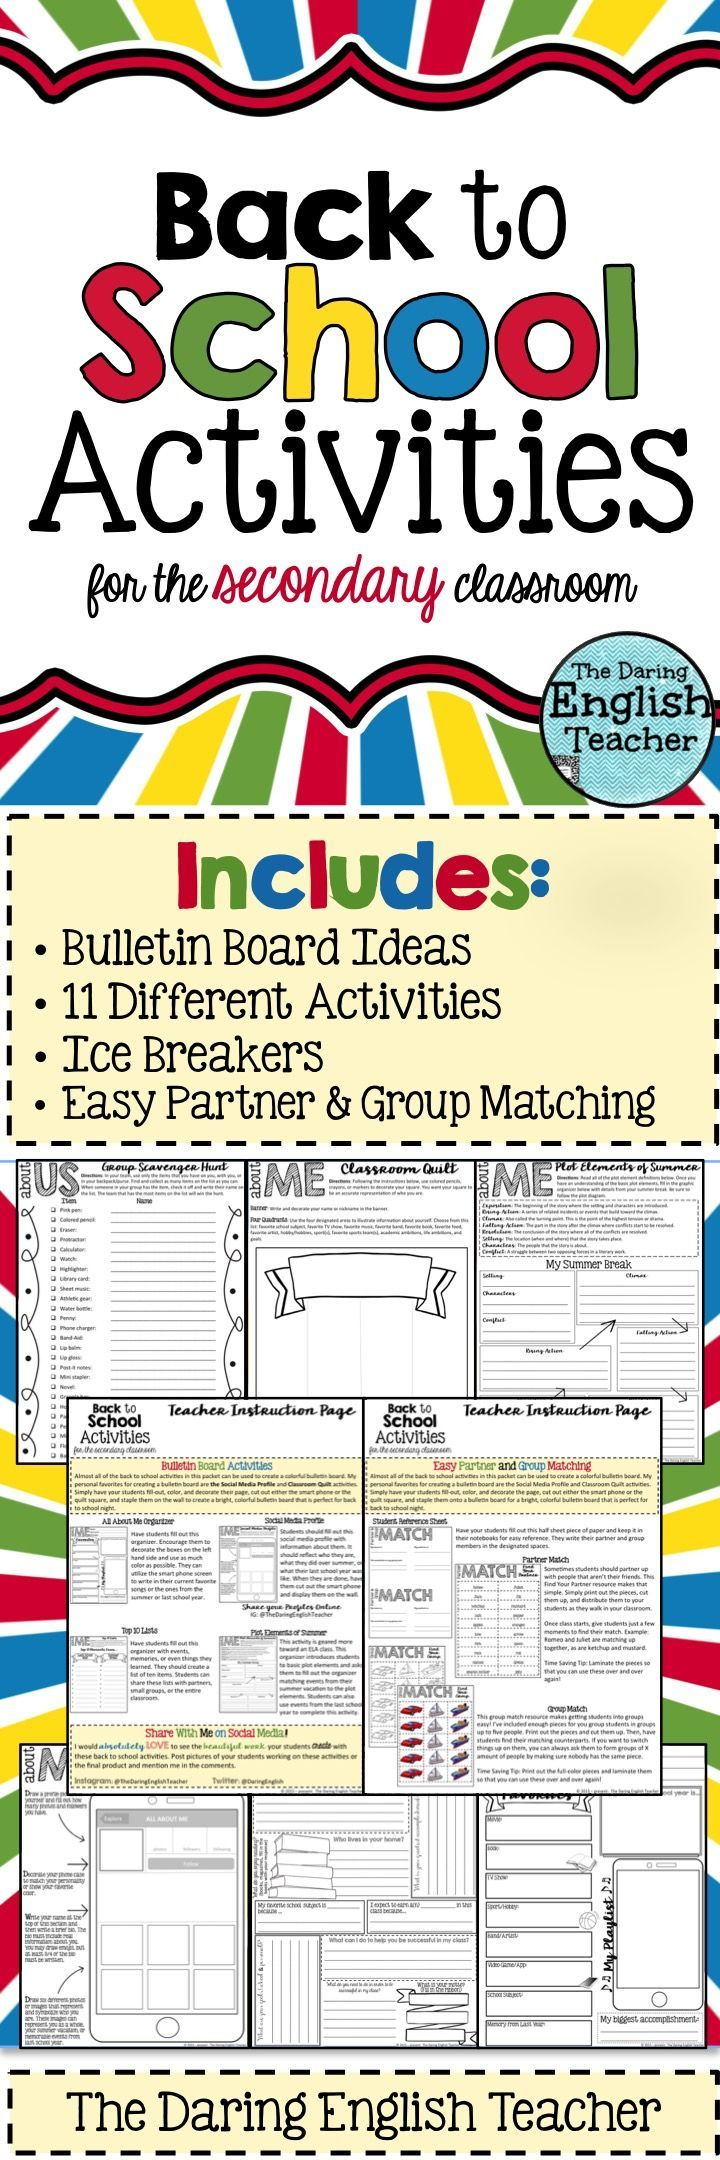 Back to school activities for the secondary classroom!